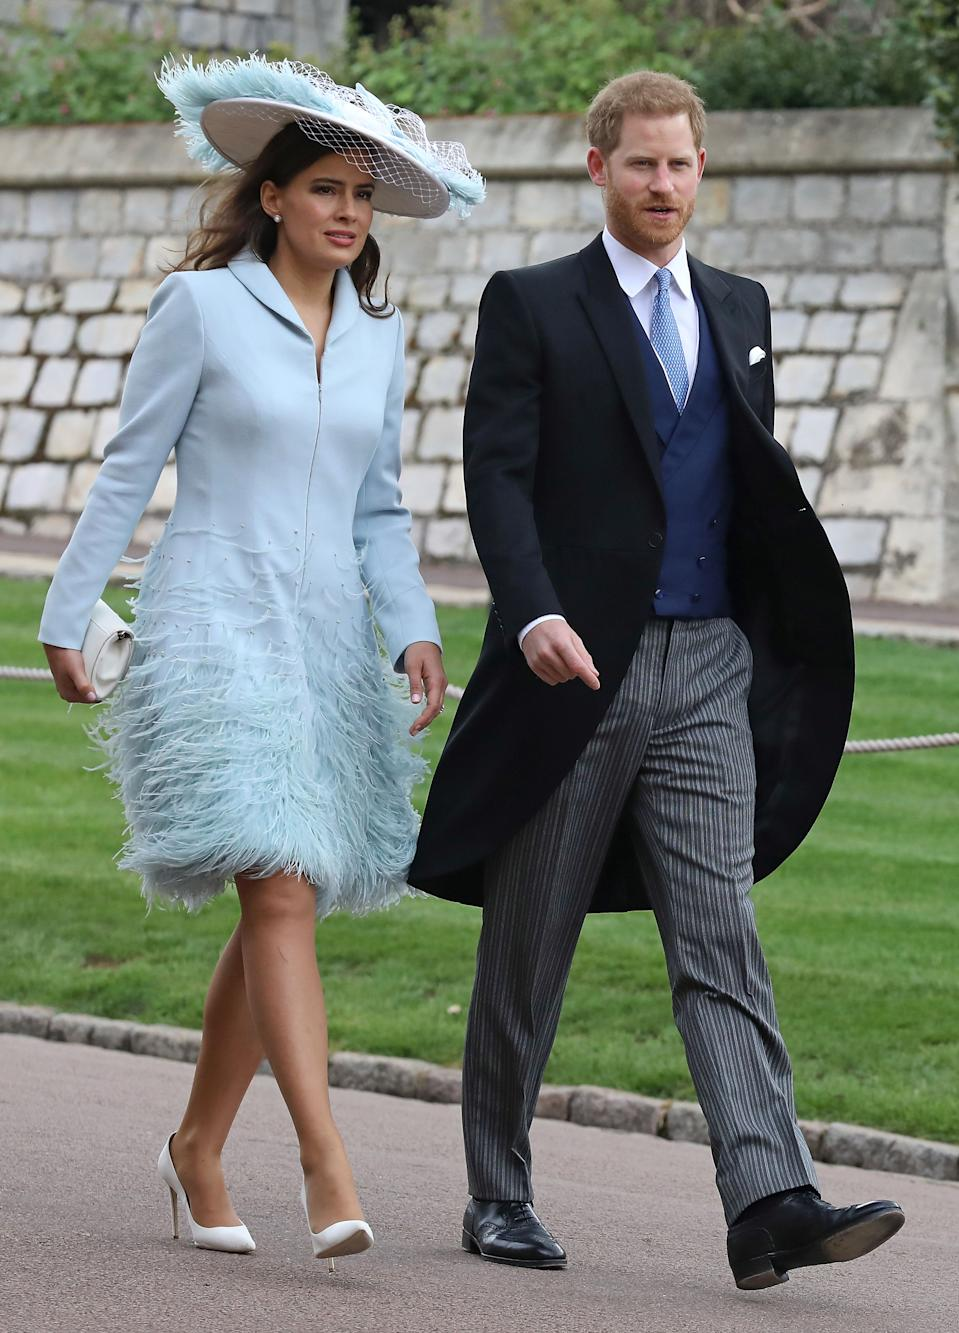 Lady Frederick Windsor (L) and Britain's Prince Harry, Duke of Sussex arrive at St George's Chapel in Windsor Castle, Windsor, west of London, on May 18, 2019, to attend the wedding of Lady Gabriella Windsor to Thomas Kingston. - Lady Gabriella, is the daughter of Prince and Princess Michael of Kent. Prince Michael, is the Queen Elizabeth II's cousin. (Photo by Steve Parsons / POOL / AFP)        (Photo credit should read STEVE PARSONS/AFP via Getty Images)